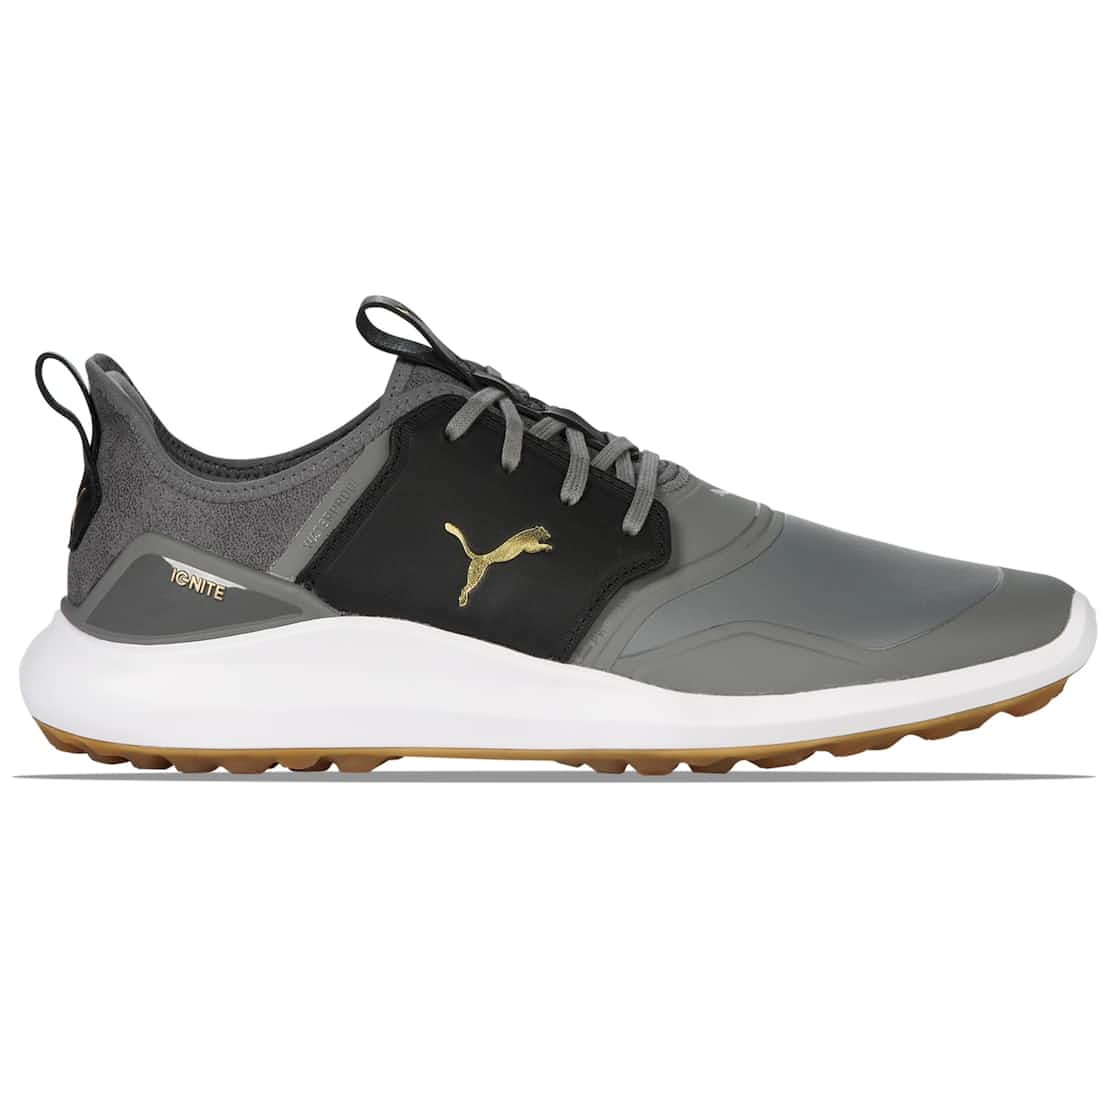 Ignite NXT Crafted Quiet Shade/Black/Team Gold - AW20